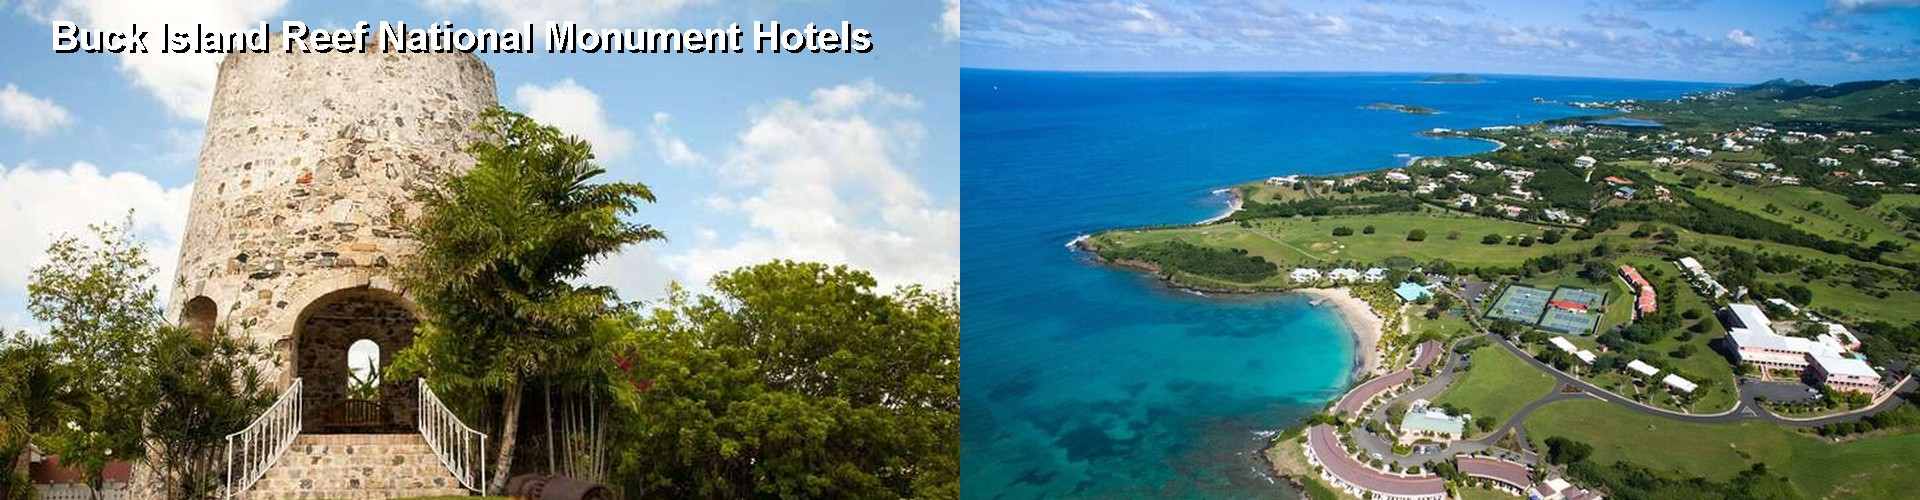 5 Best Hotels near Buck Island Reef National Monument